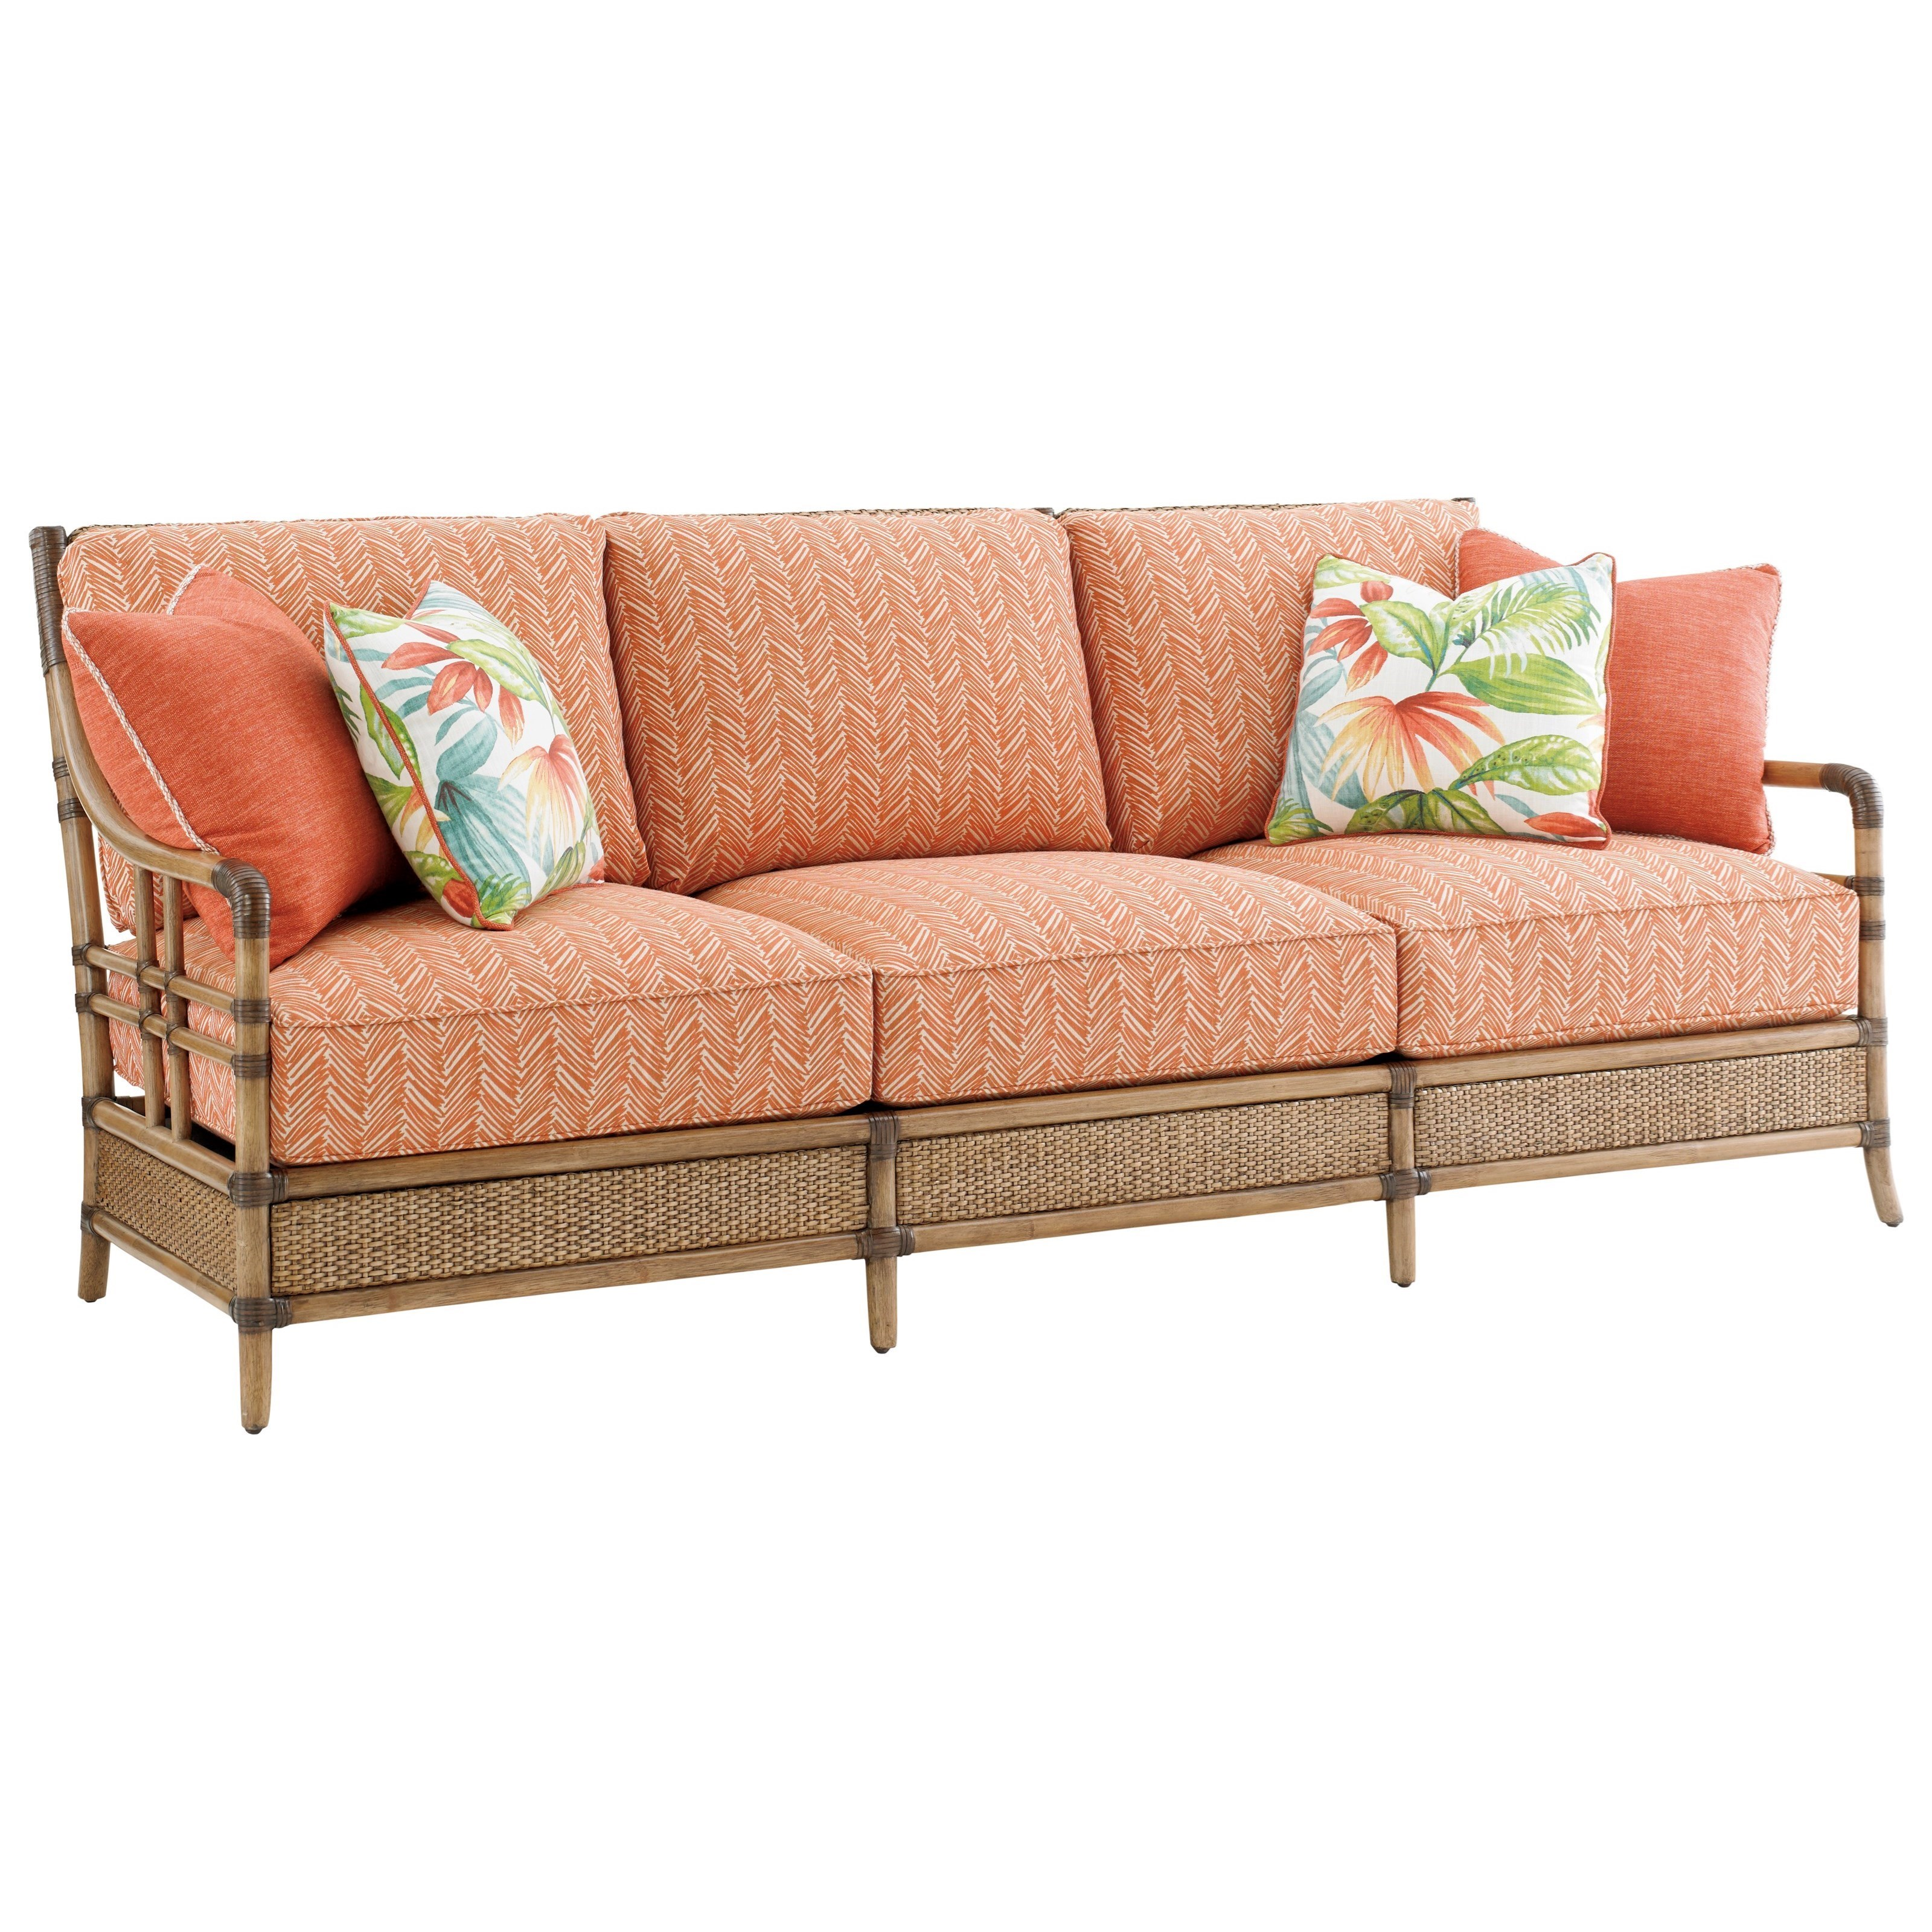 Rattan Twin Sofa Tommy Bahama Home Twin Palms Seagate Sofa With Woven And Leather